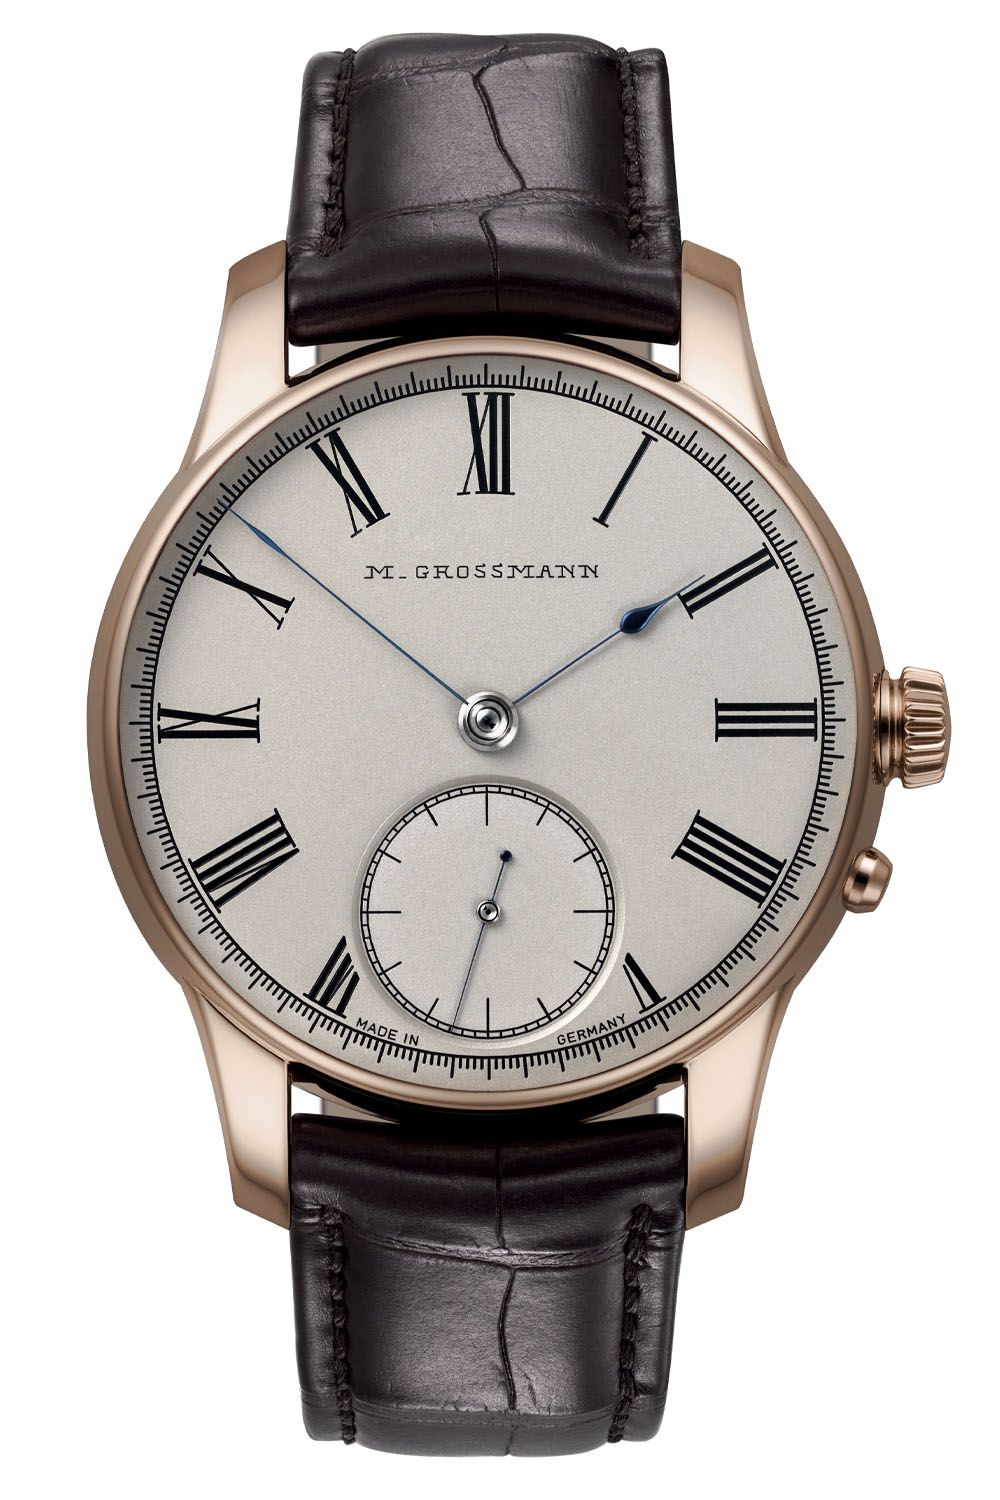 Moritz Grossmann XII Birthday Edition Watches